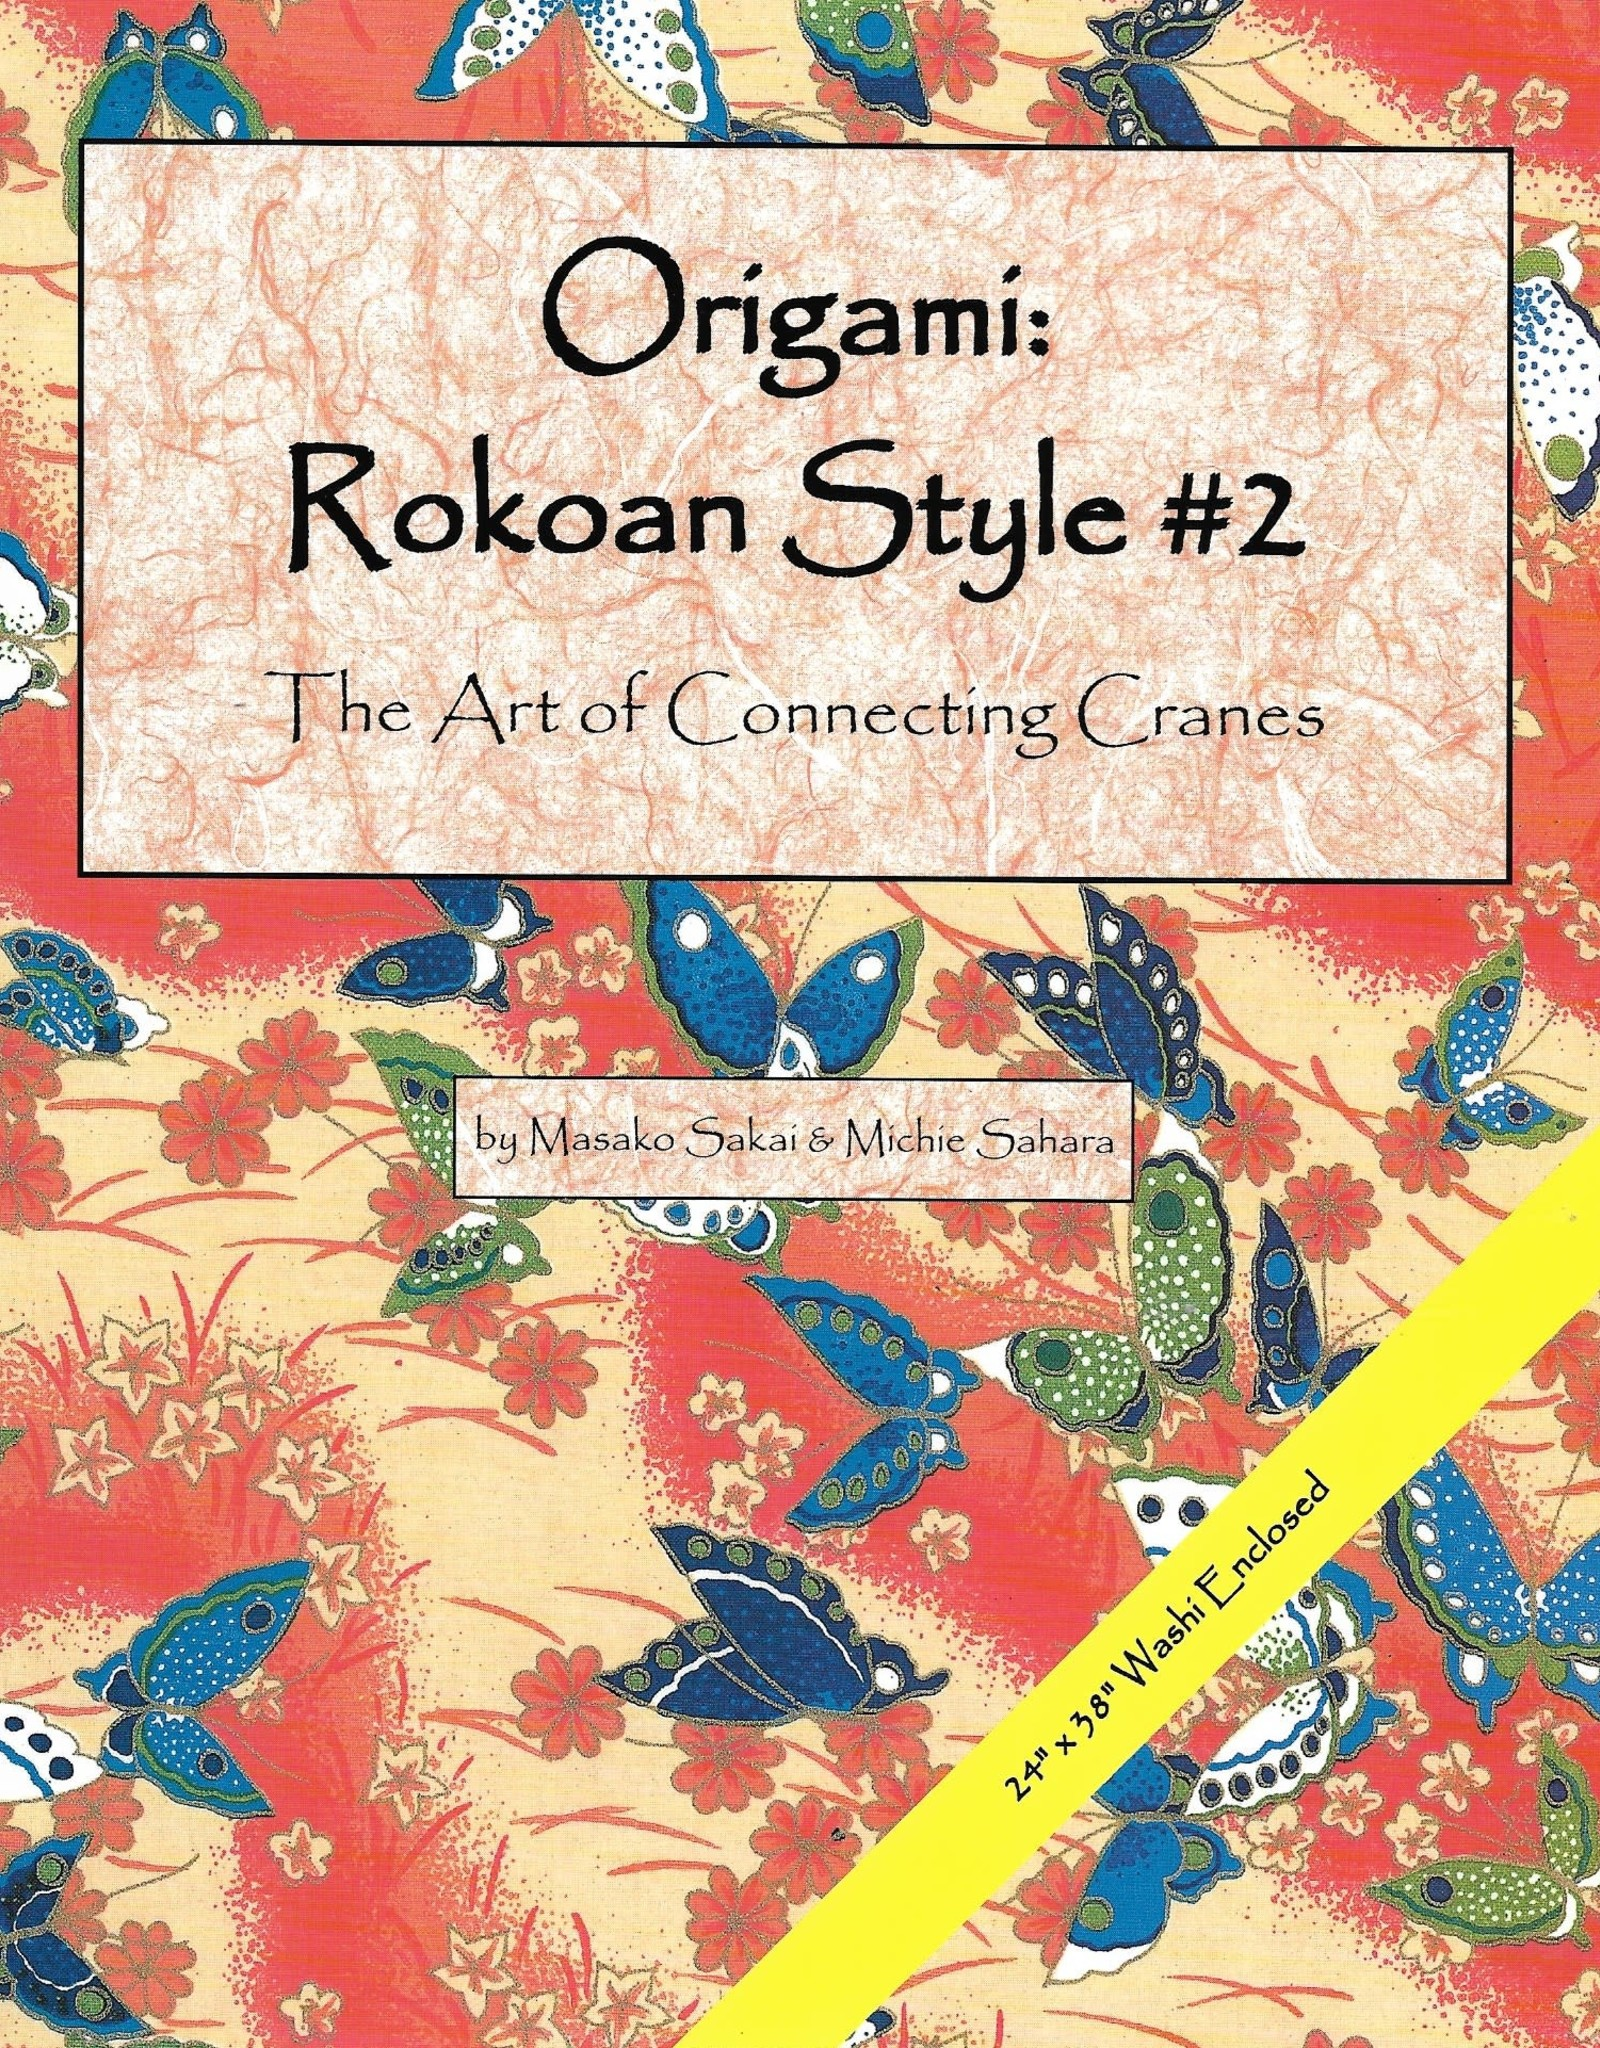 Origami: Rokoan Style #2: The Art of Connecting Cranes